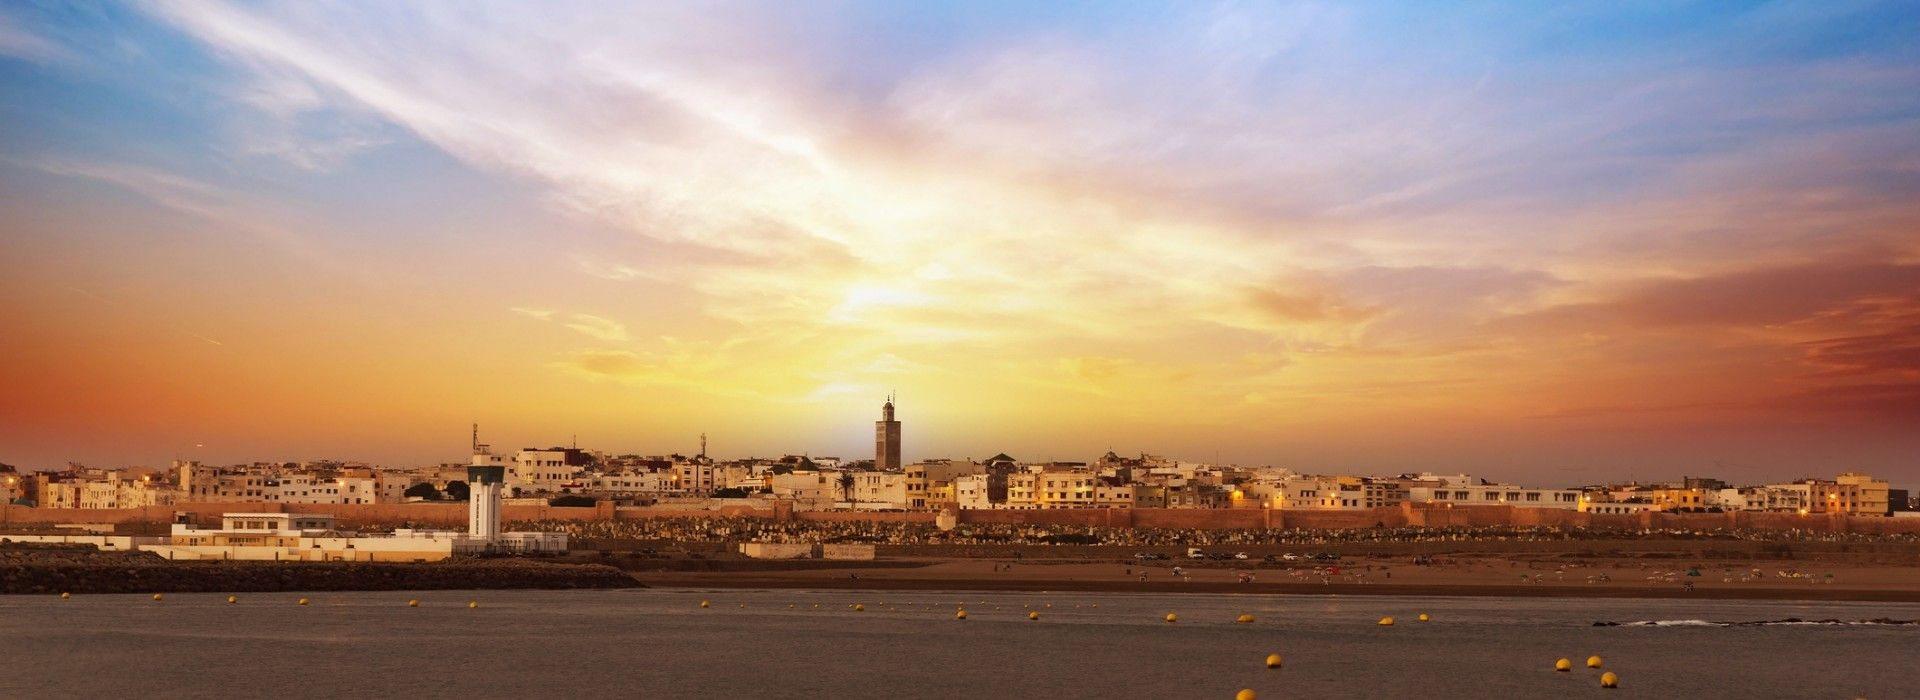 City sightseeing Tours in Marrakech